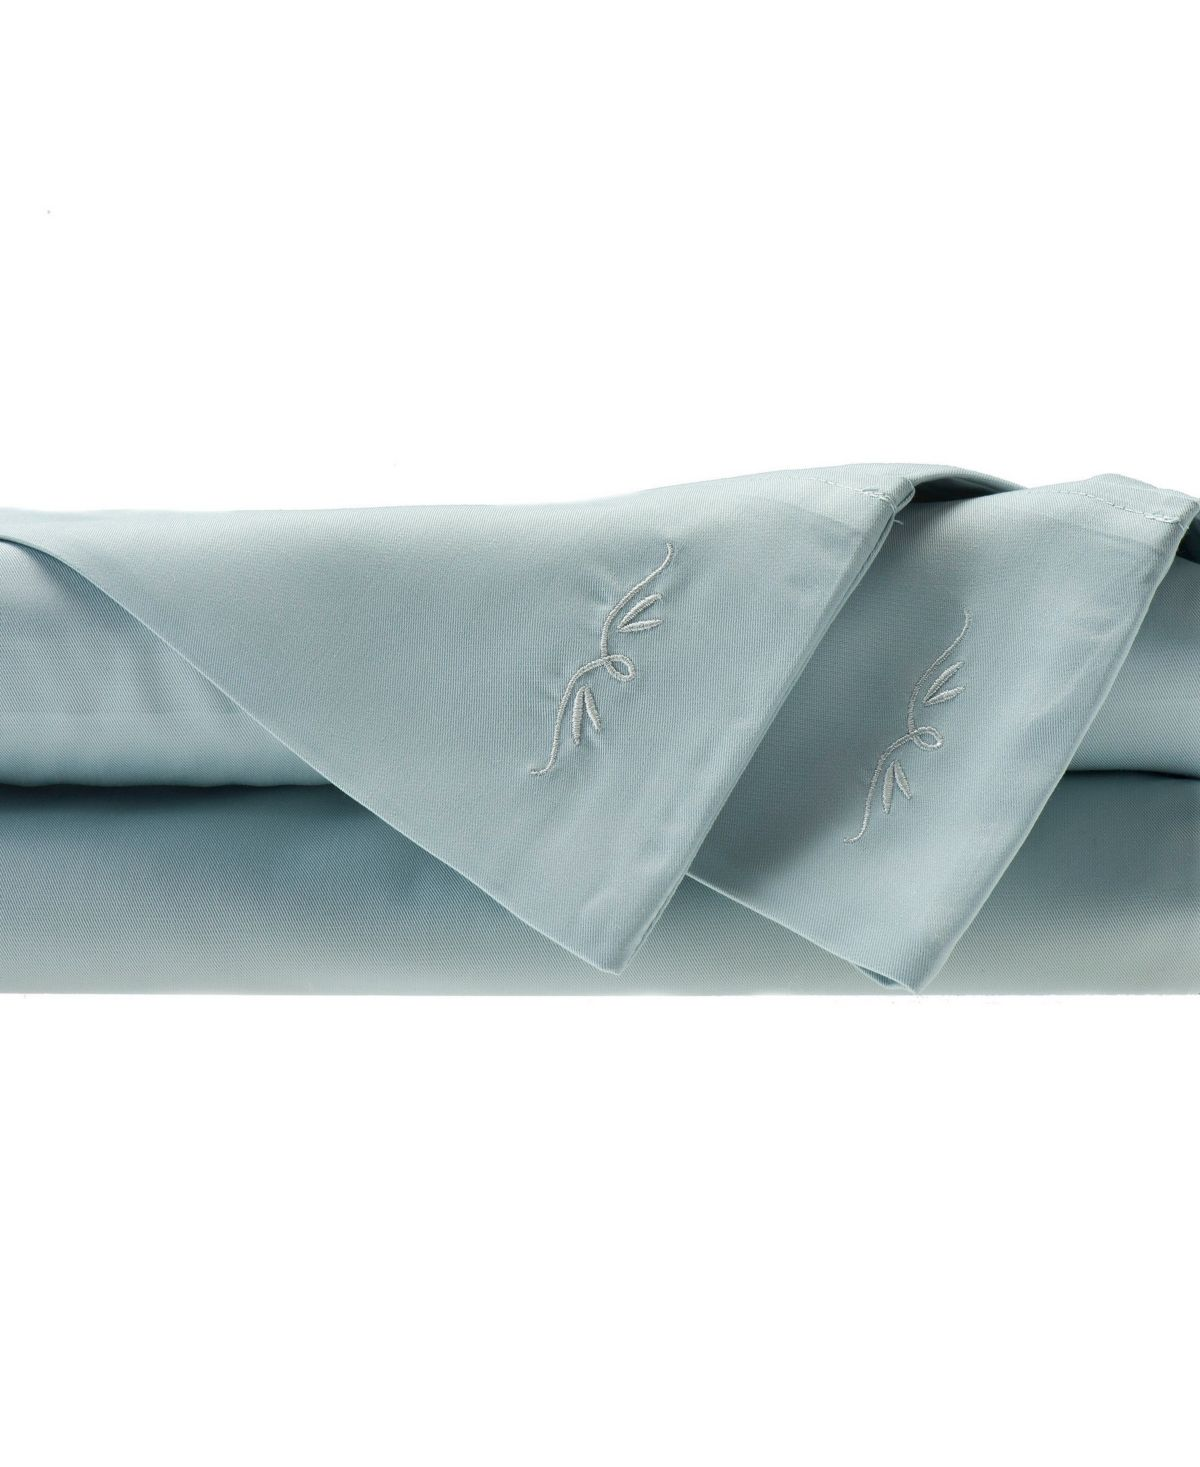 BedVoyage Luxury Bamboo Sheets 4 Piece Viscose from